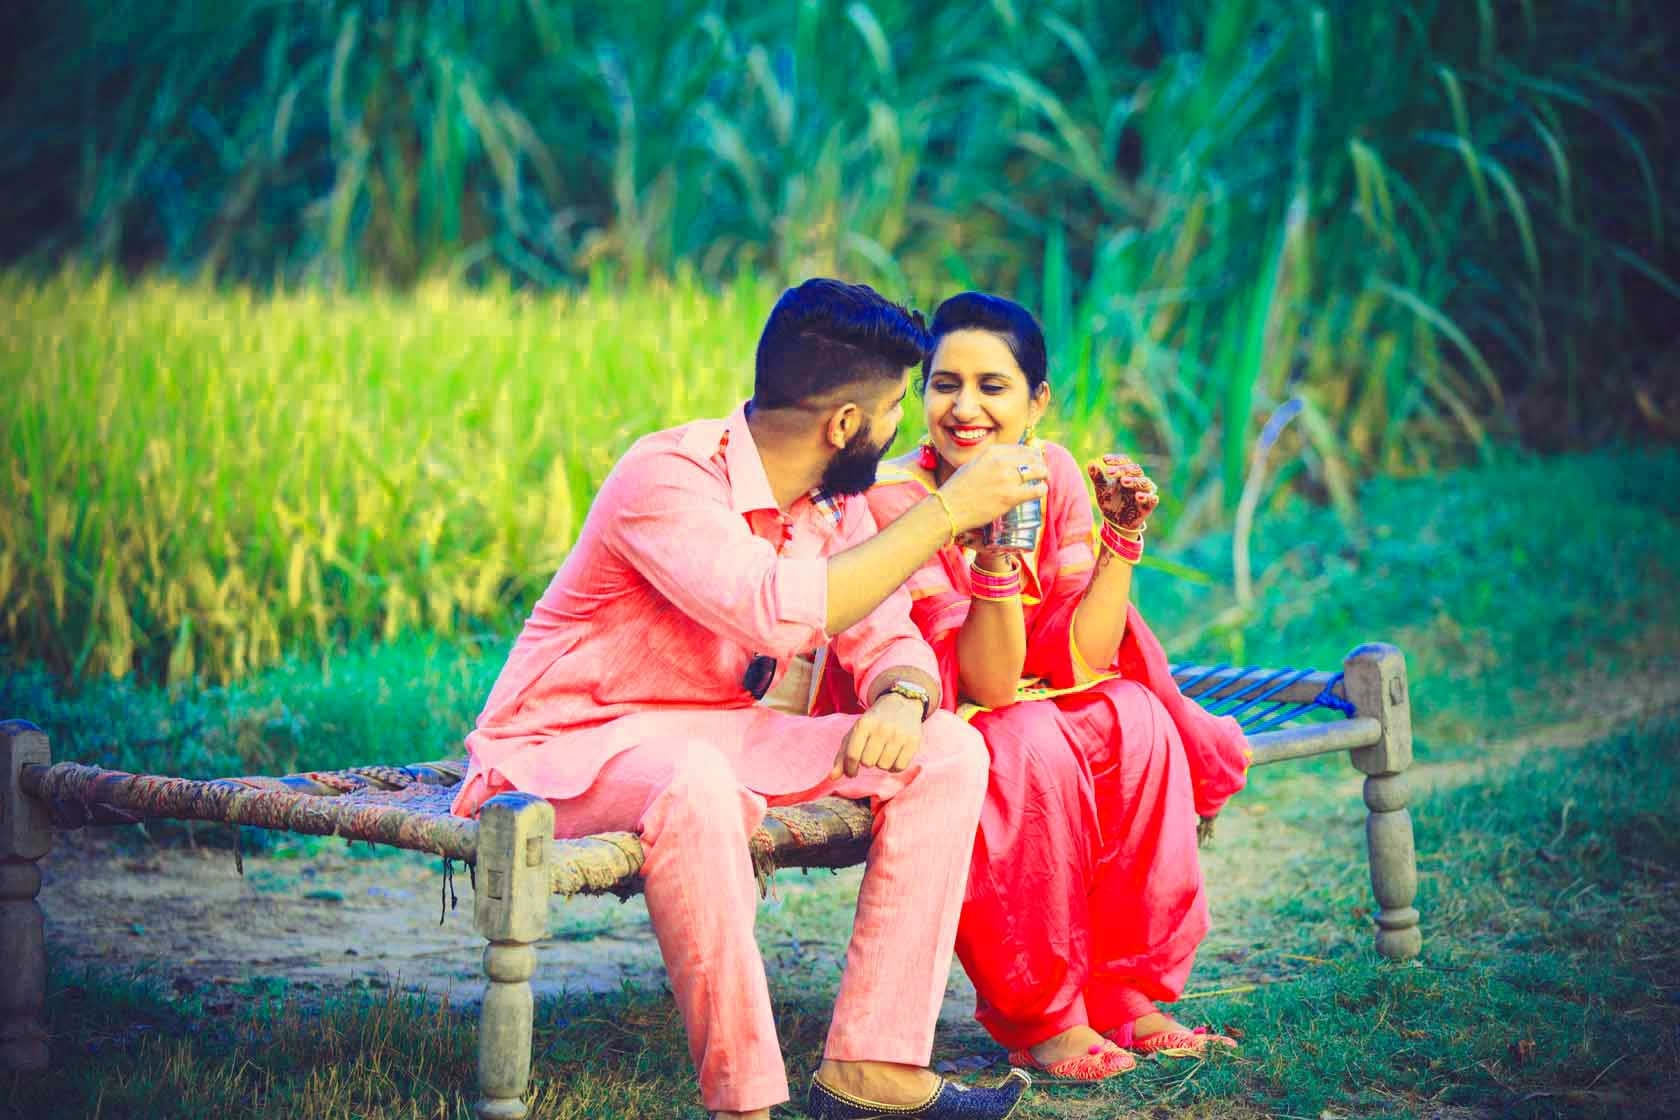 Cute Couple Hd Wallpapers With Quotes In Hindi 112 Punjabi Couple Wedding Images Wallpaper Photo Free